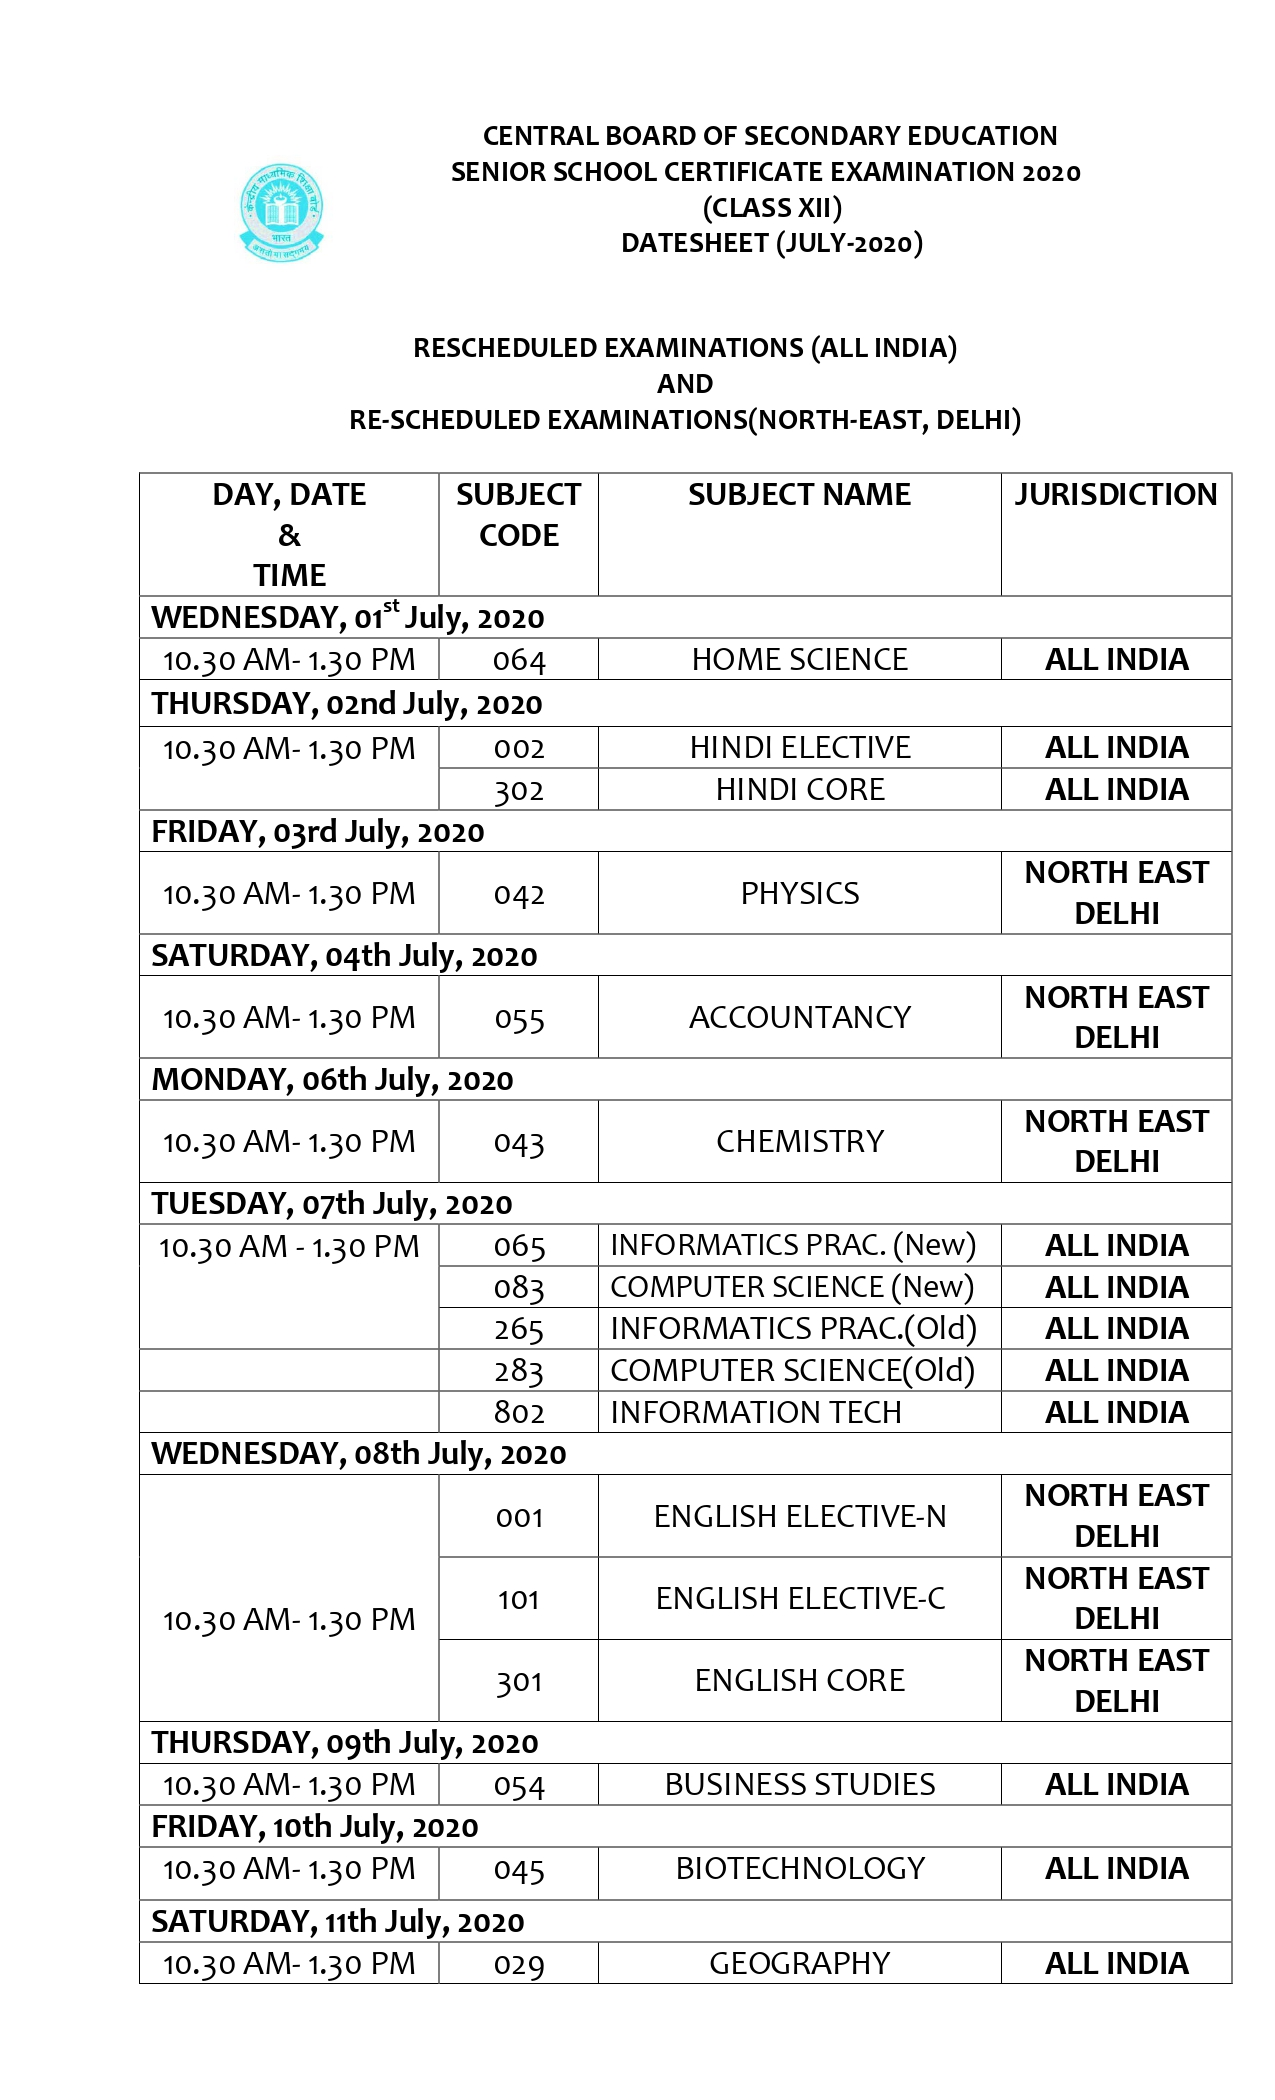 CENTRAL BOARD OF SECONDARY EDUCATION SECONDARY SCHOOL EXAMINATION 2020 date sheet class 12th